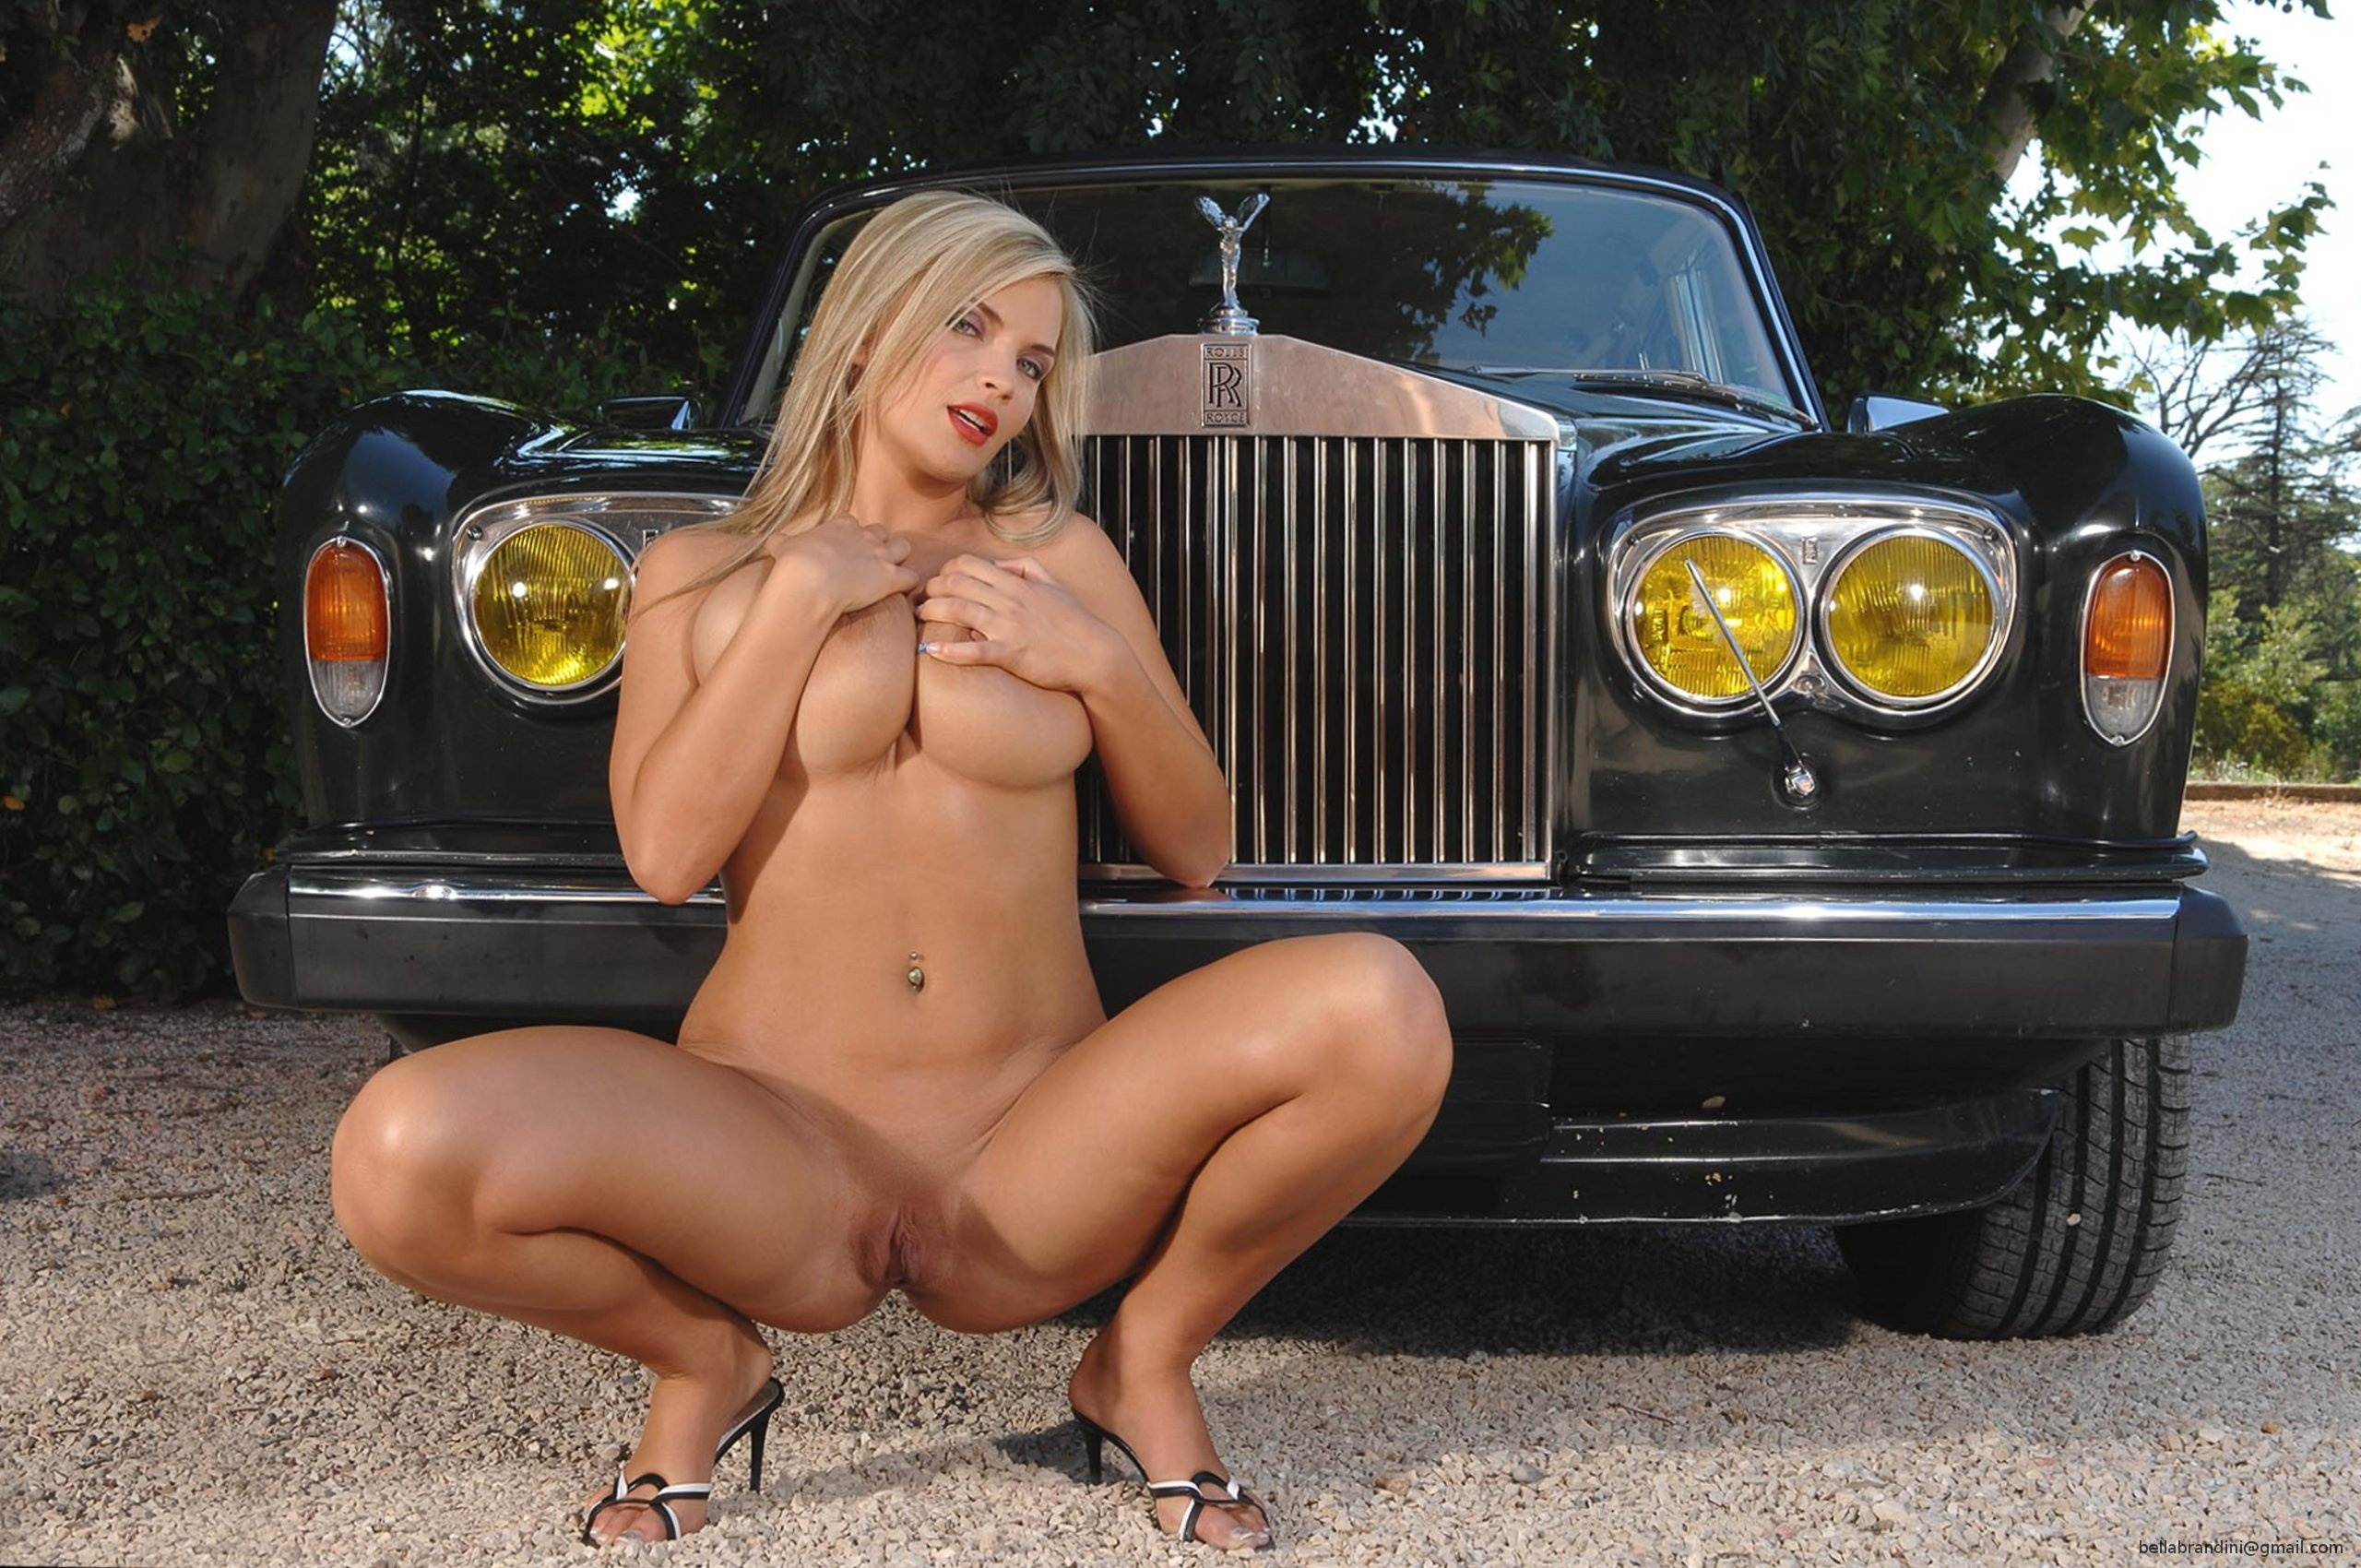 Xxx sexy hd wallpapers of cars agree with